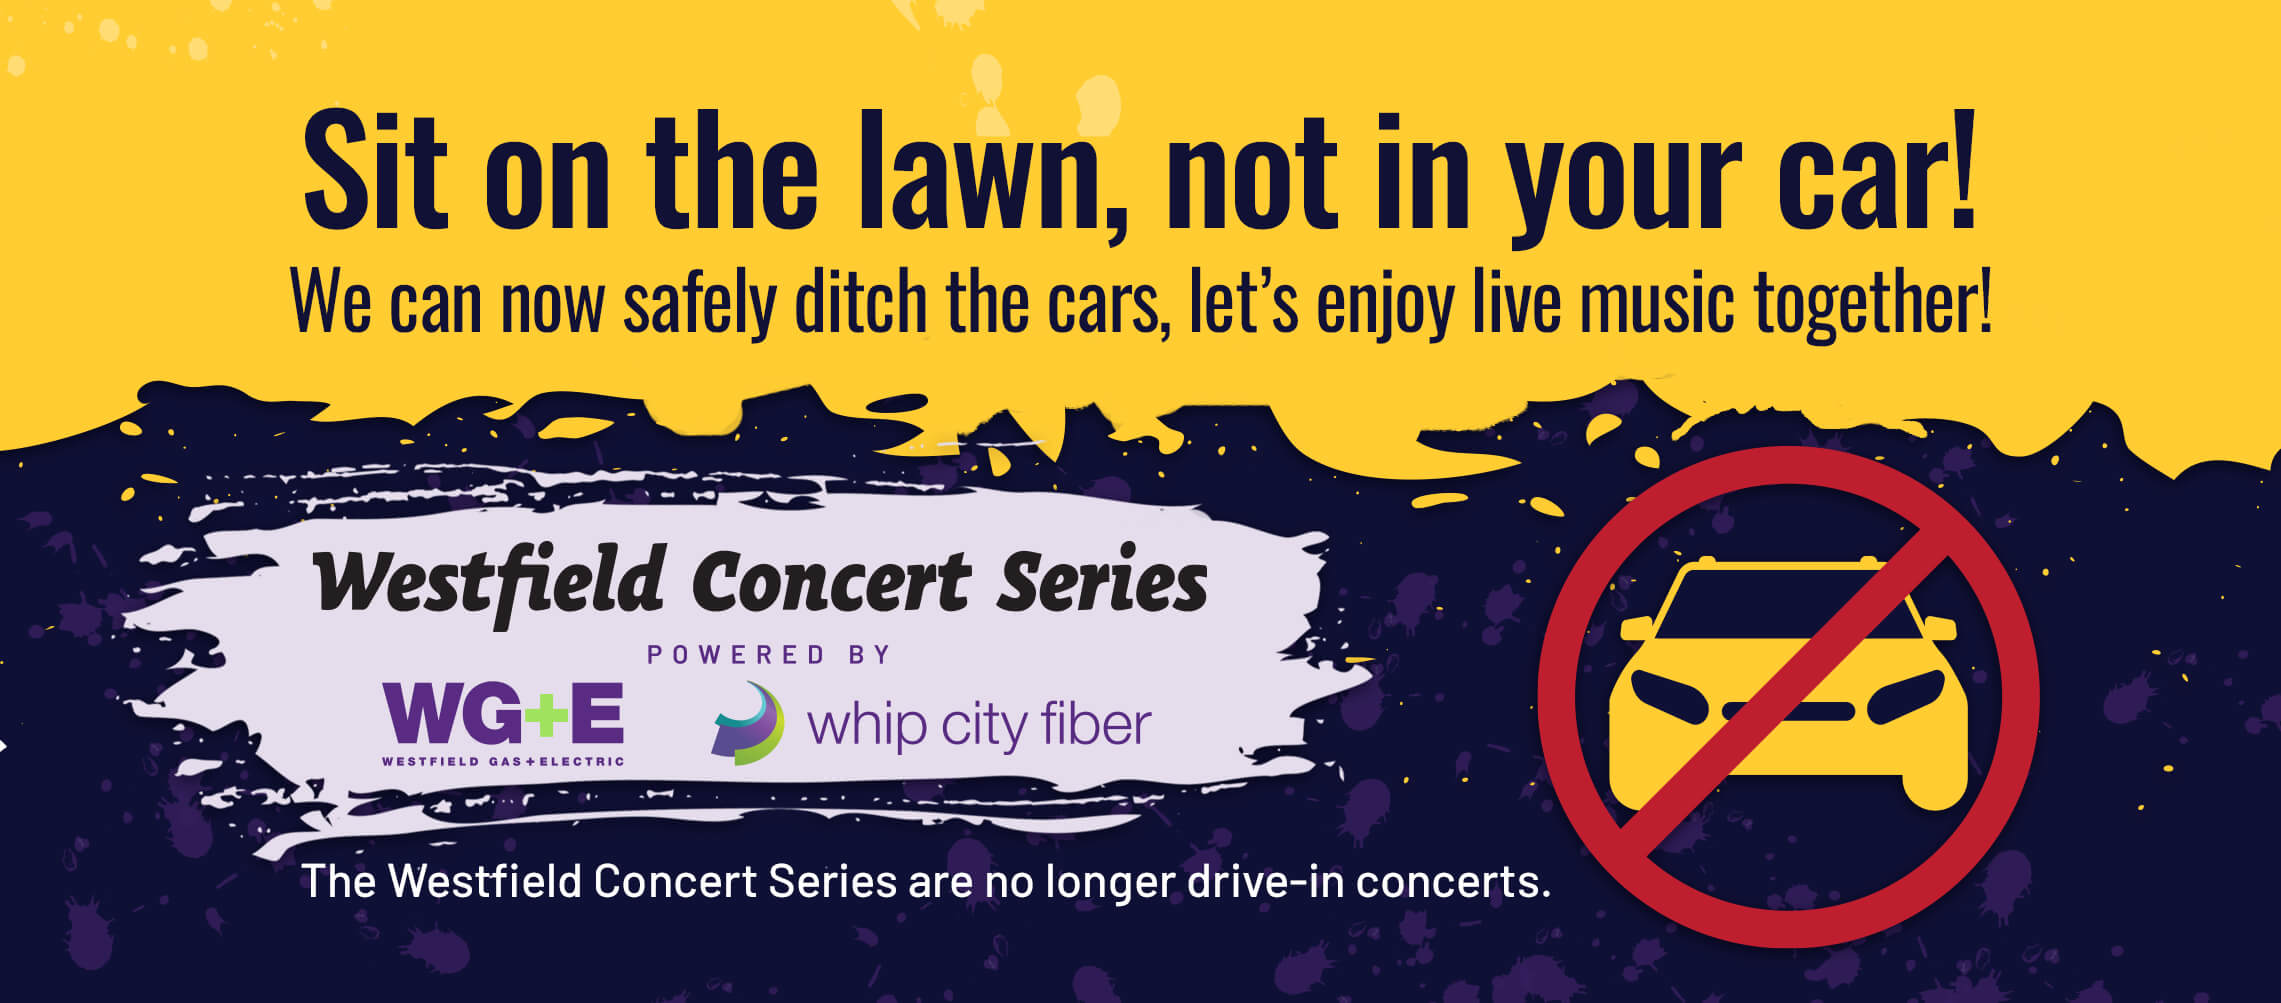 Sit on the lawn, not in your car. The Concert Series is no longer a drive-in